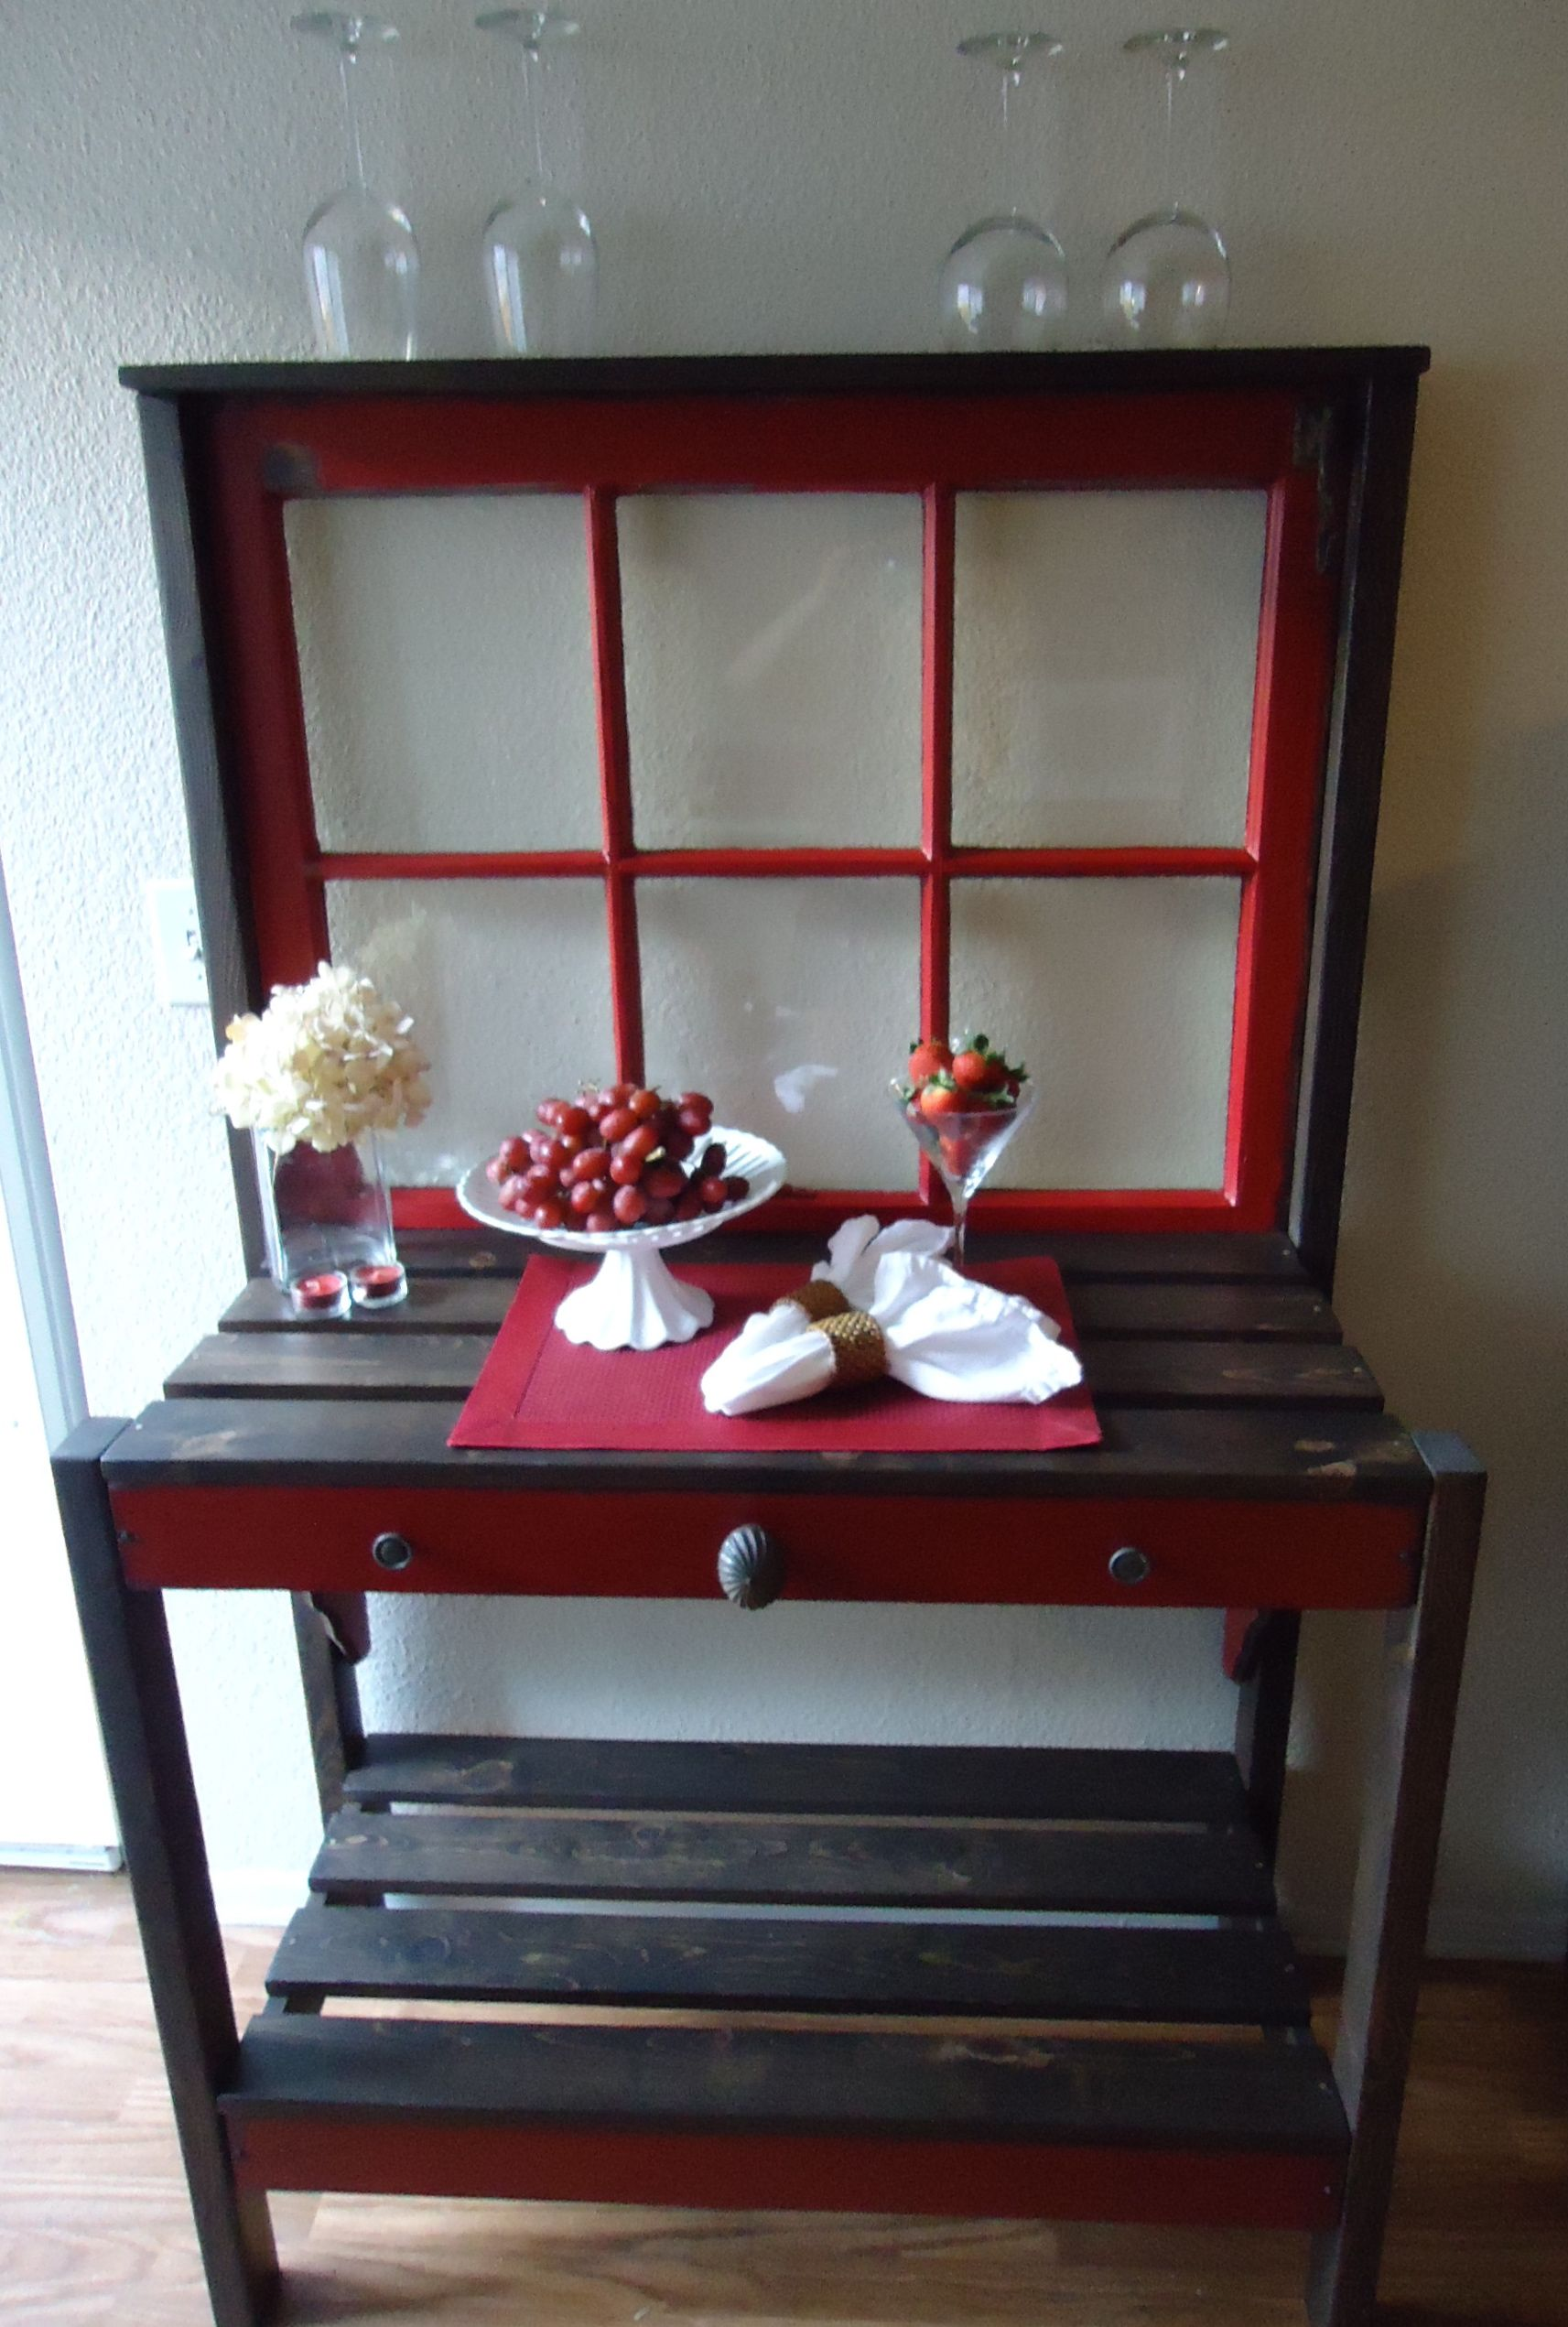 Window pane ideas  sold  s six pane window table with vintage hardware  ideas